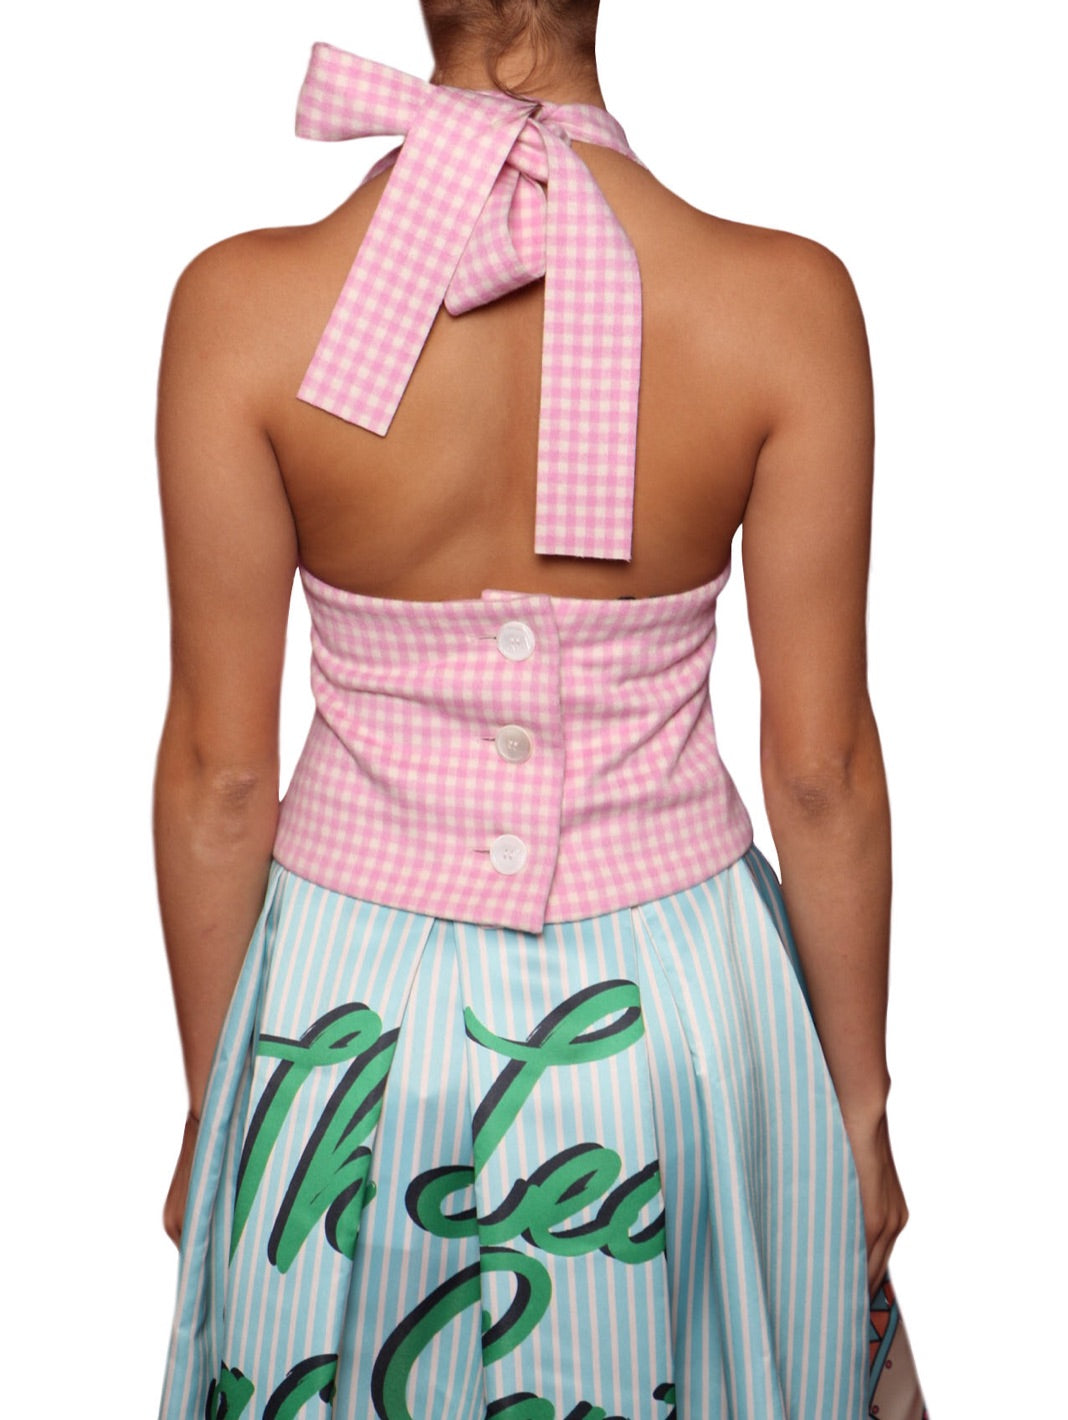 Gingham Check Halter Wool Top - The Bobby Boga